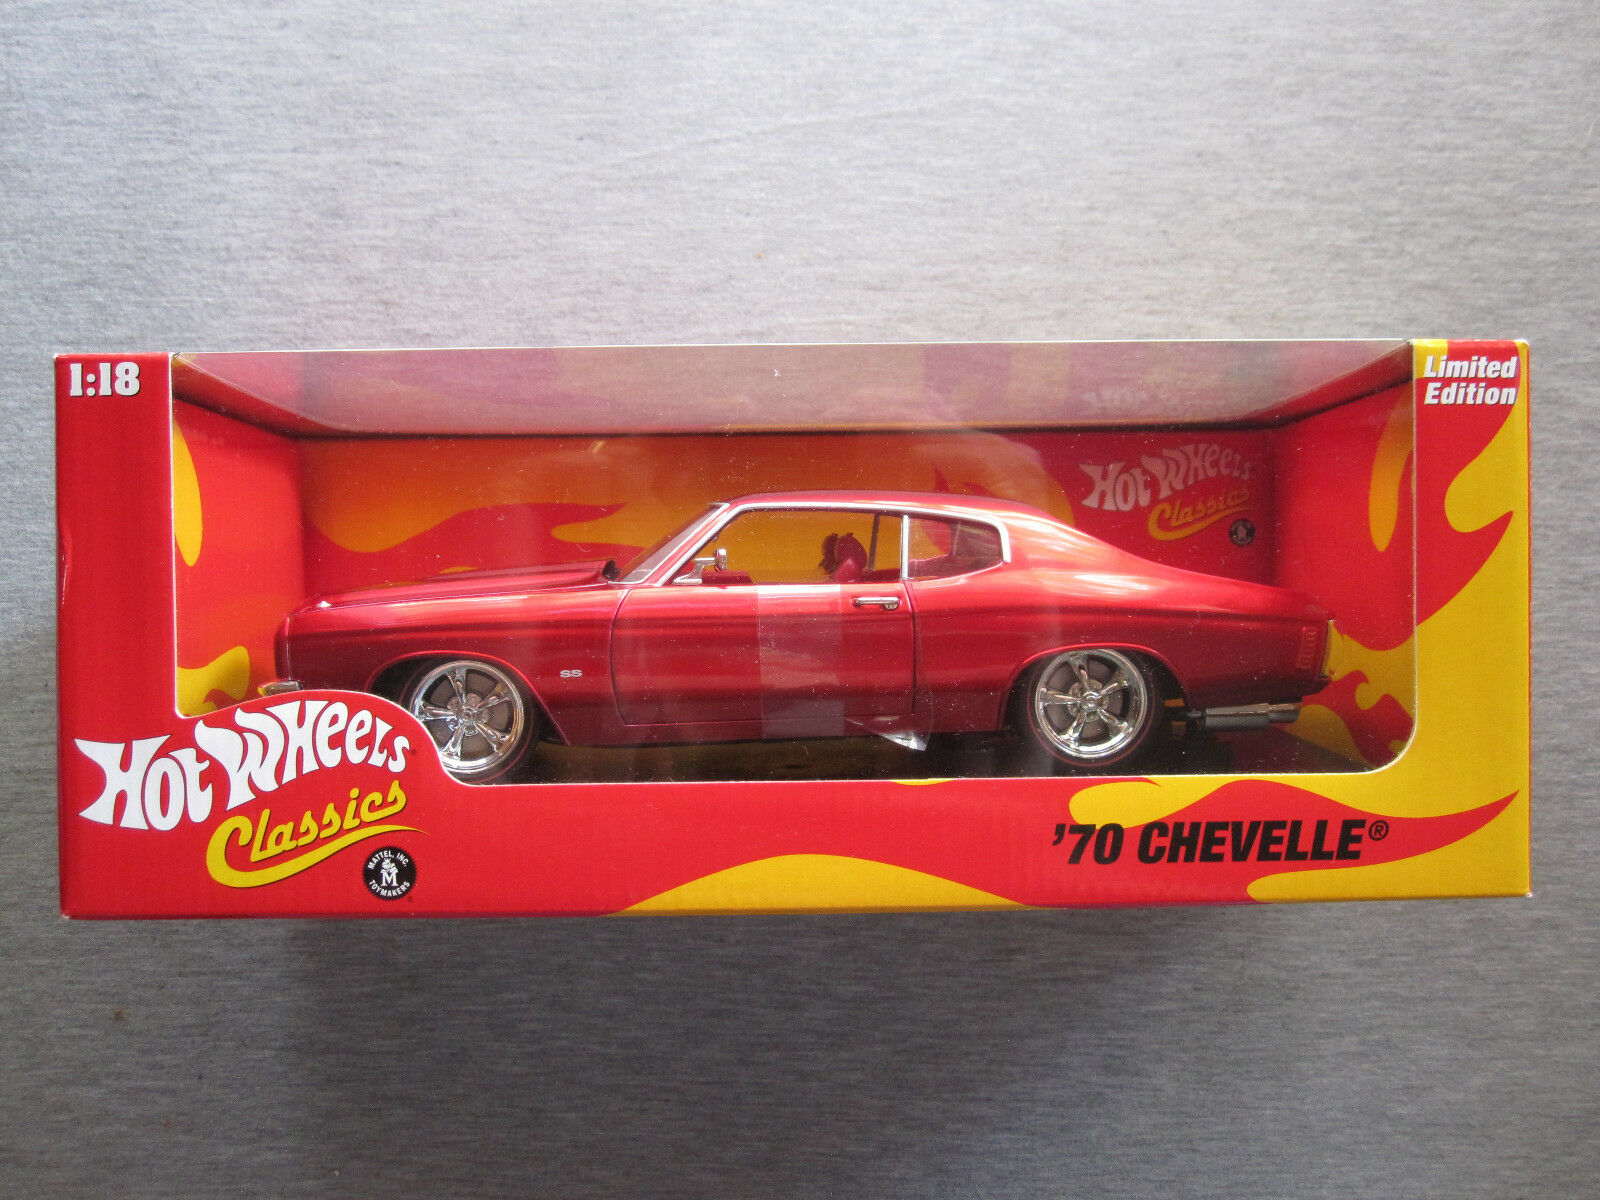 Hot wheels - klassiker 1,18 hwc limited edition  70 chevelle h8760 - neue